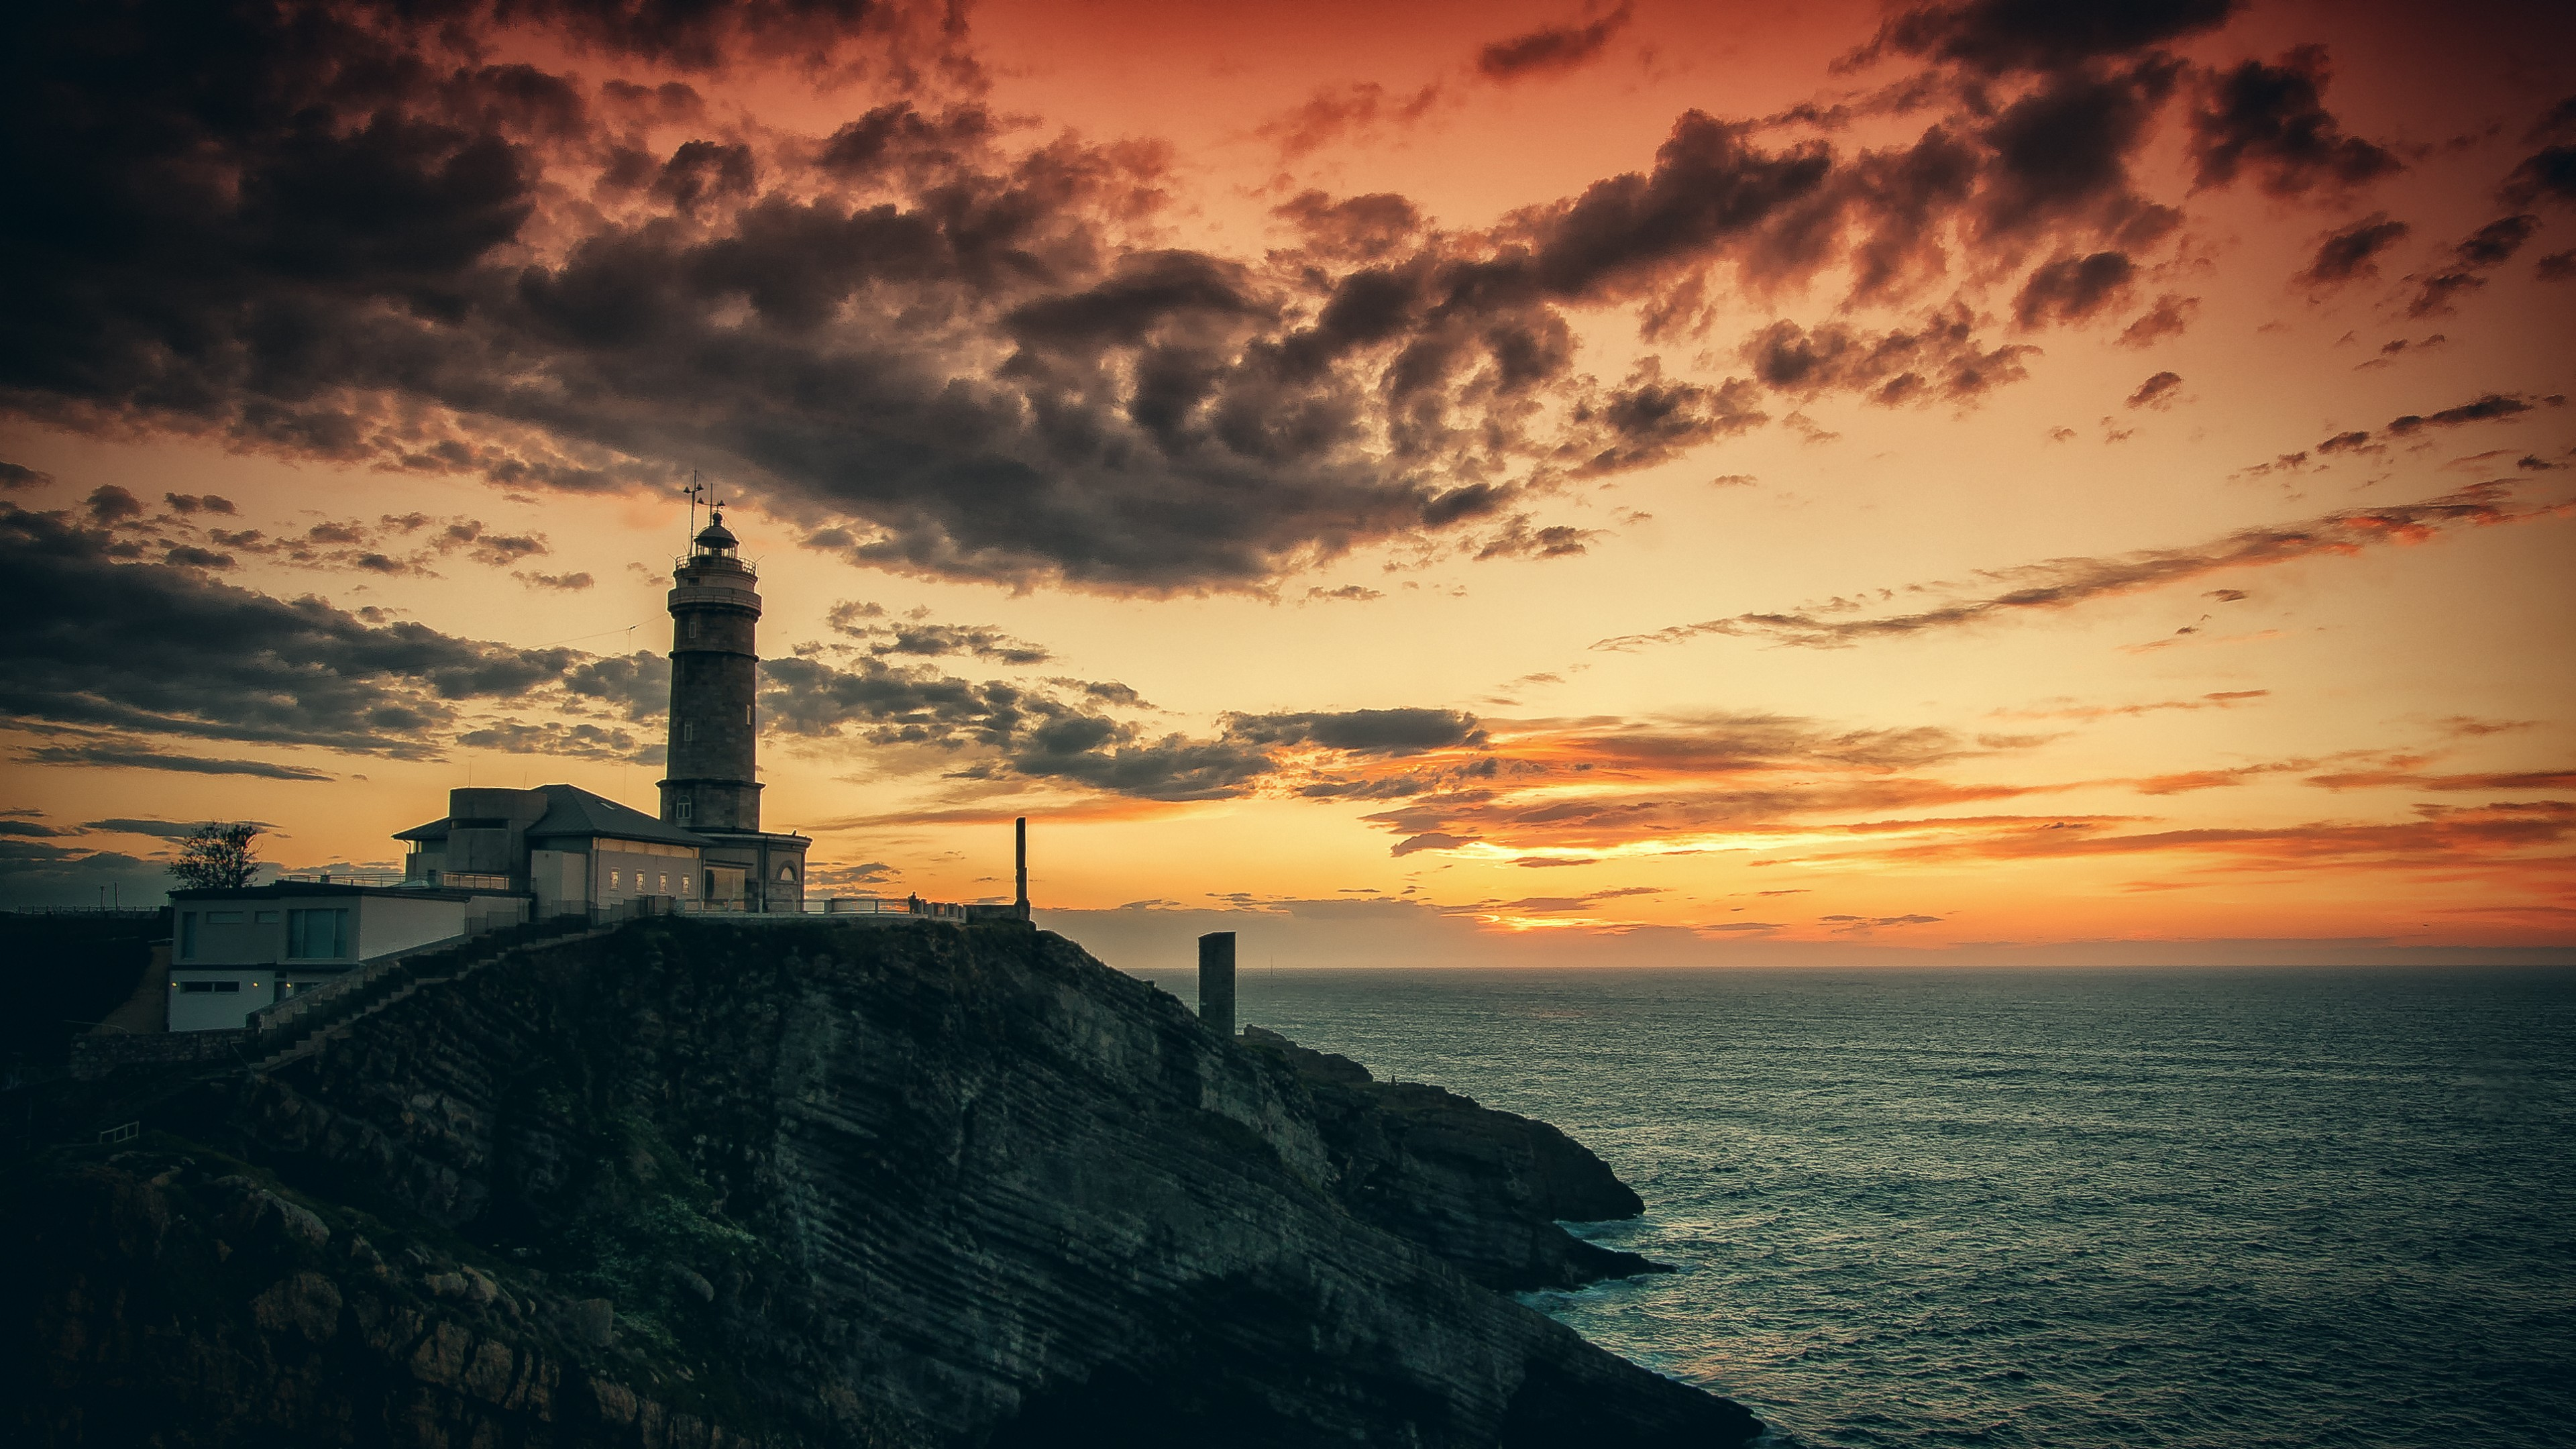 Lighthouse Hd Wallpapers: Wallpaper Lighthouse, HD, 4k Wallpaper, Rocks, Sea, Sunset